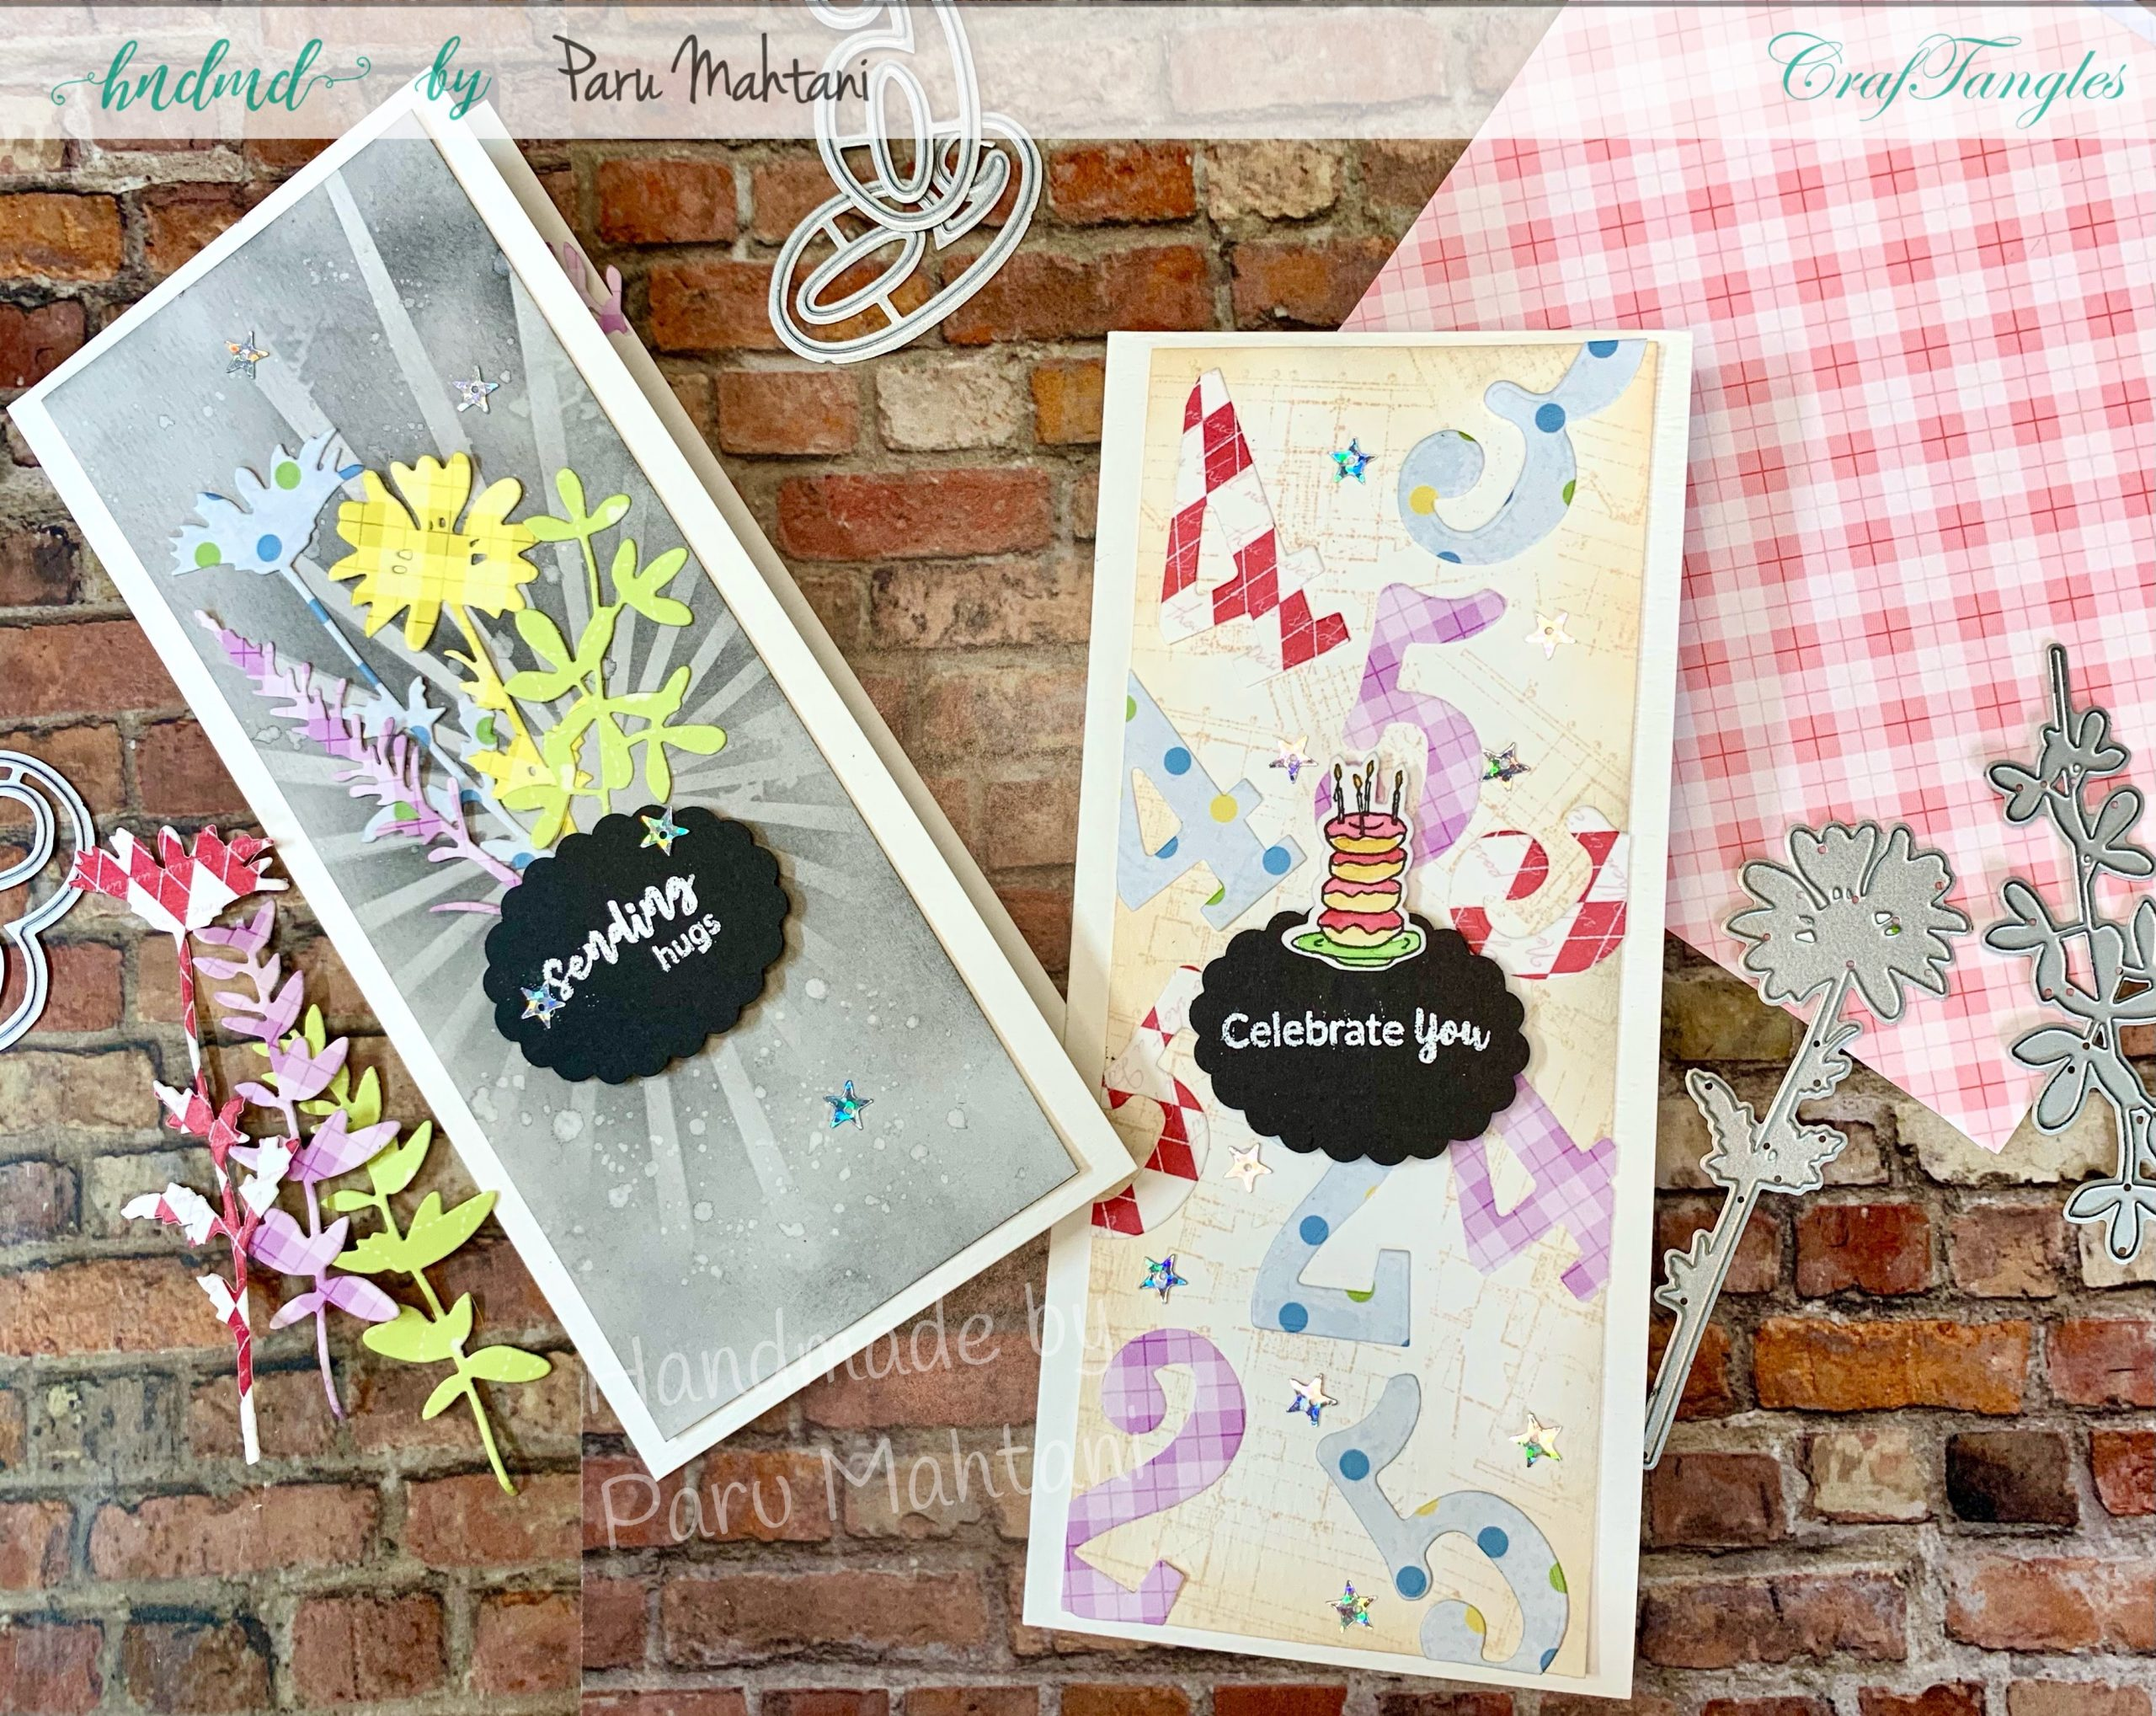 2 shades of rainbow patterned paper cards